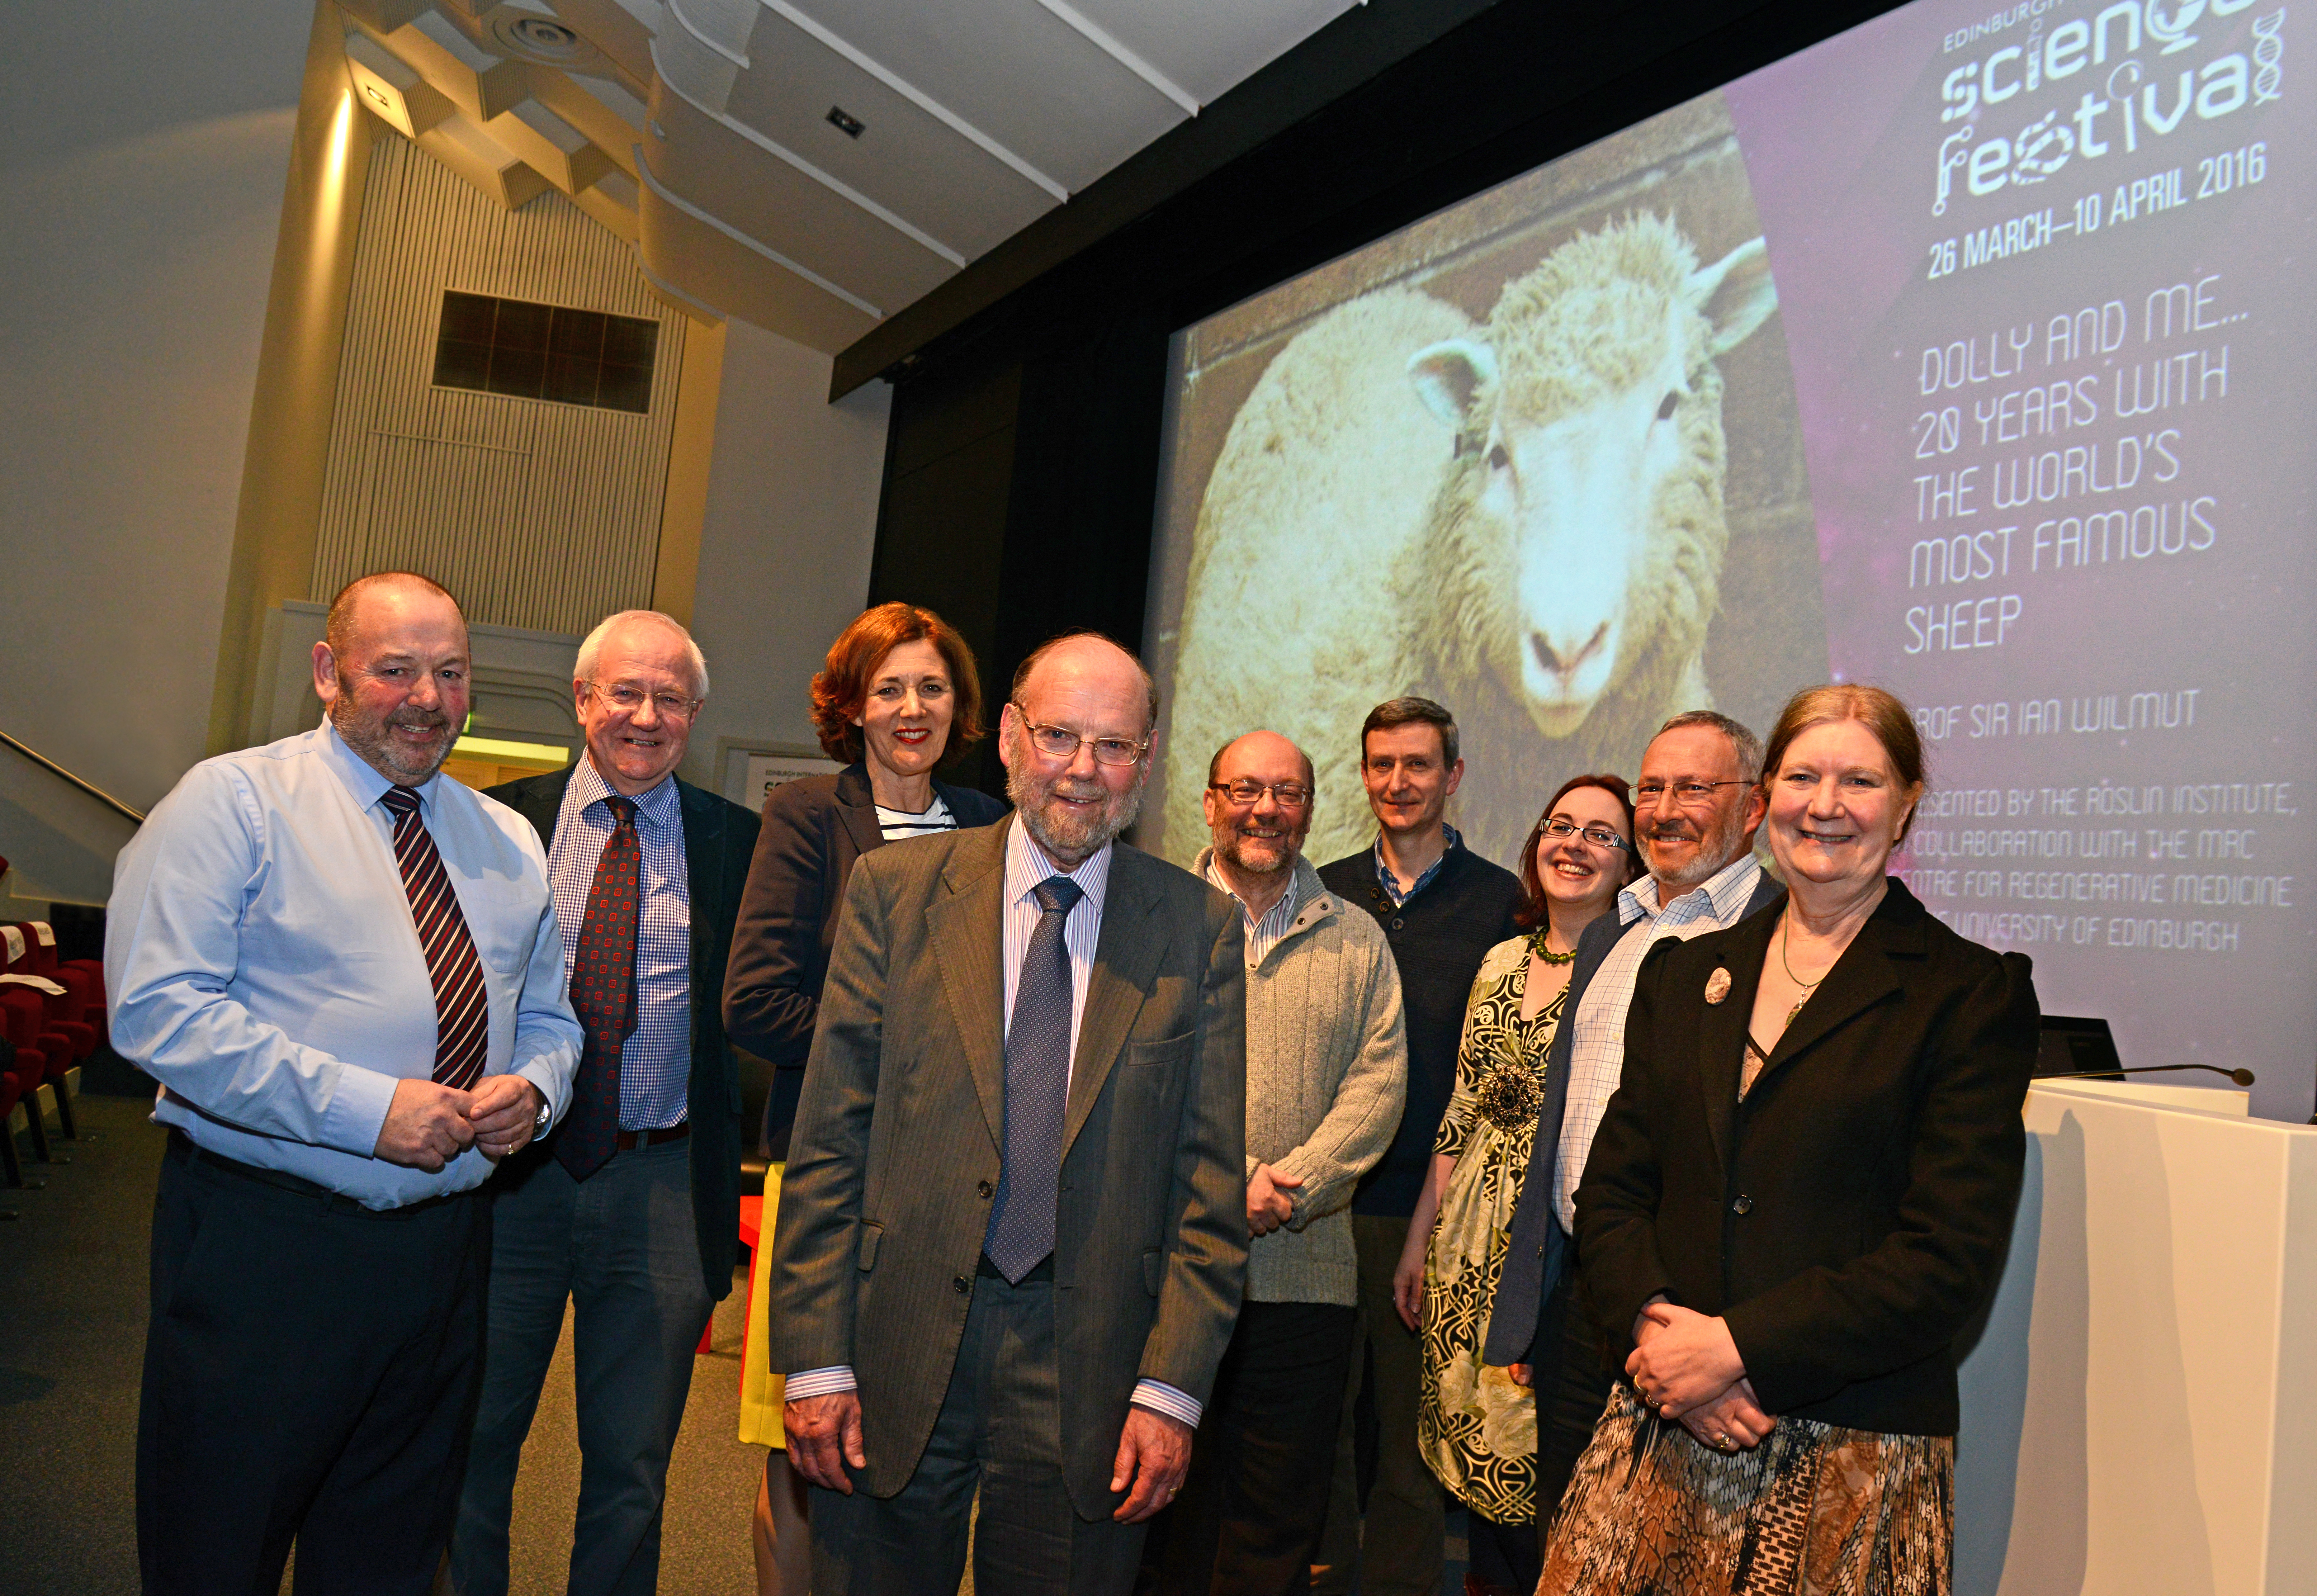 Our Dolly and Me panel and members of the Dolly team. From left to right: Dougie McGavin, John Bracken, Vivienne Parry OBE, Professor Sir Ian Wilmut, Professor Bruce Whitelaw, Dr Andrew Kitchener, Clare Button, Dr Bill Ritchie and Professor Mary Bownes.